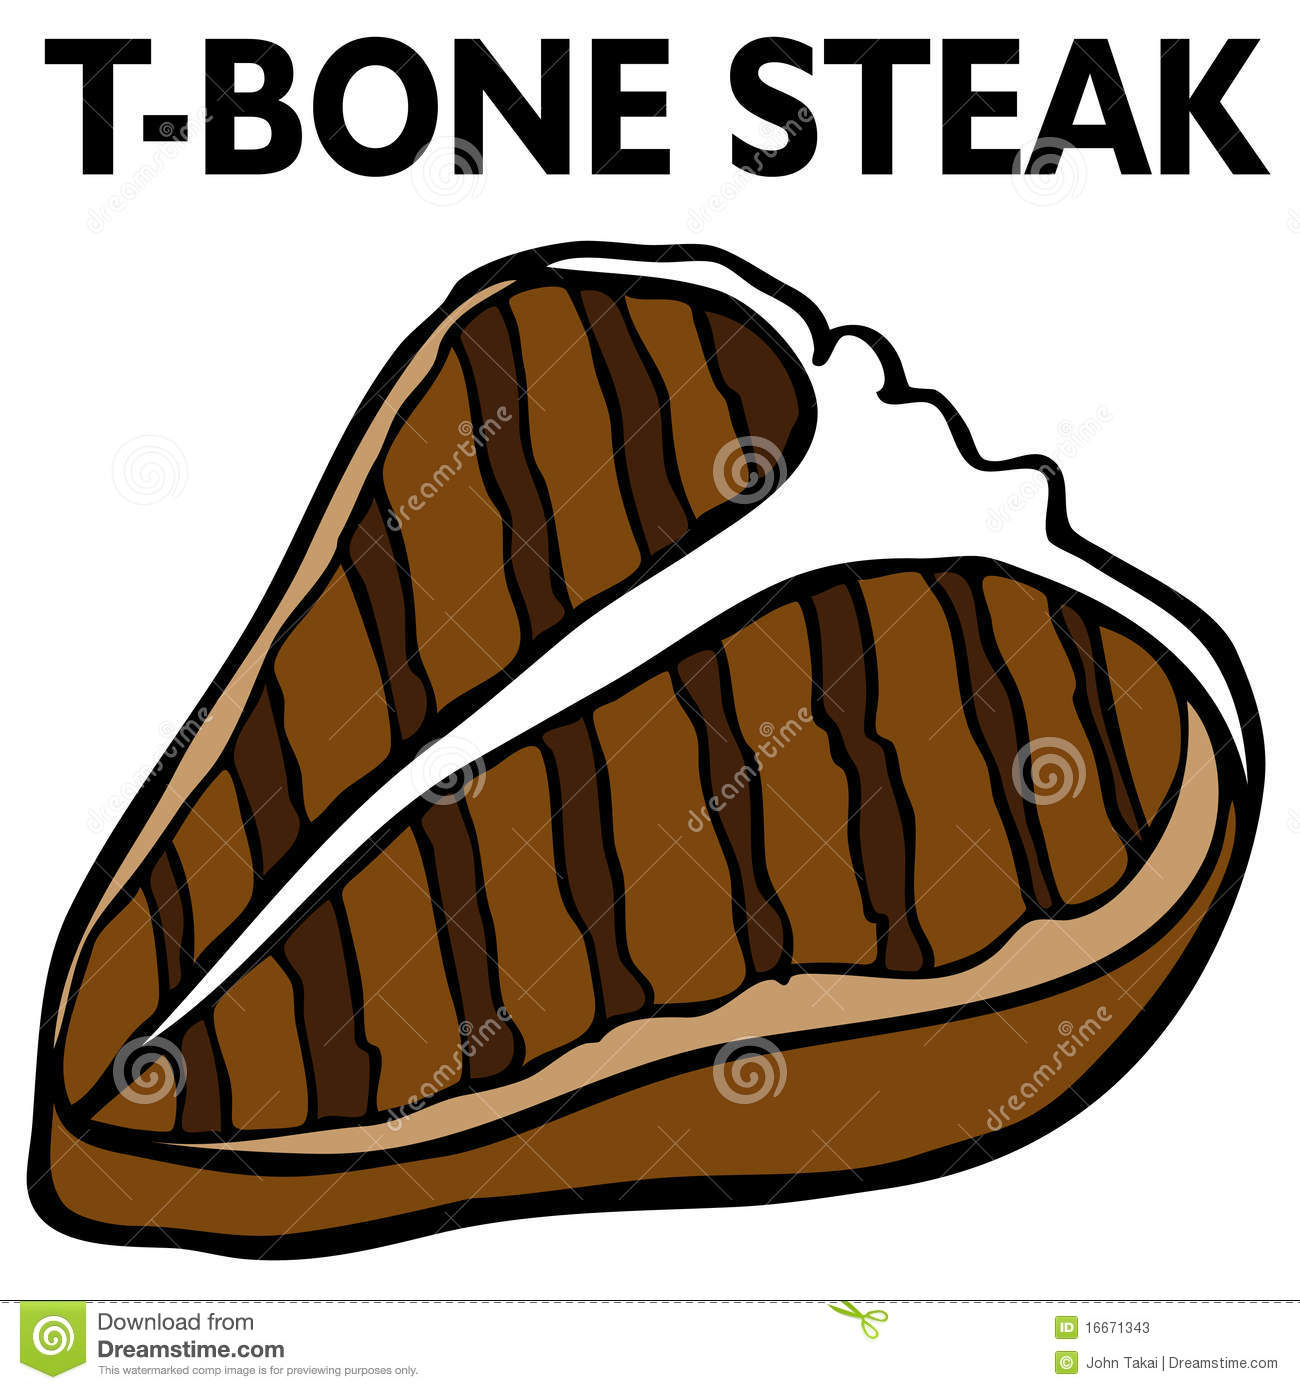 Bone Steak Stock Photos - Image: 16671343